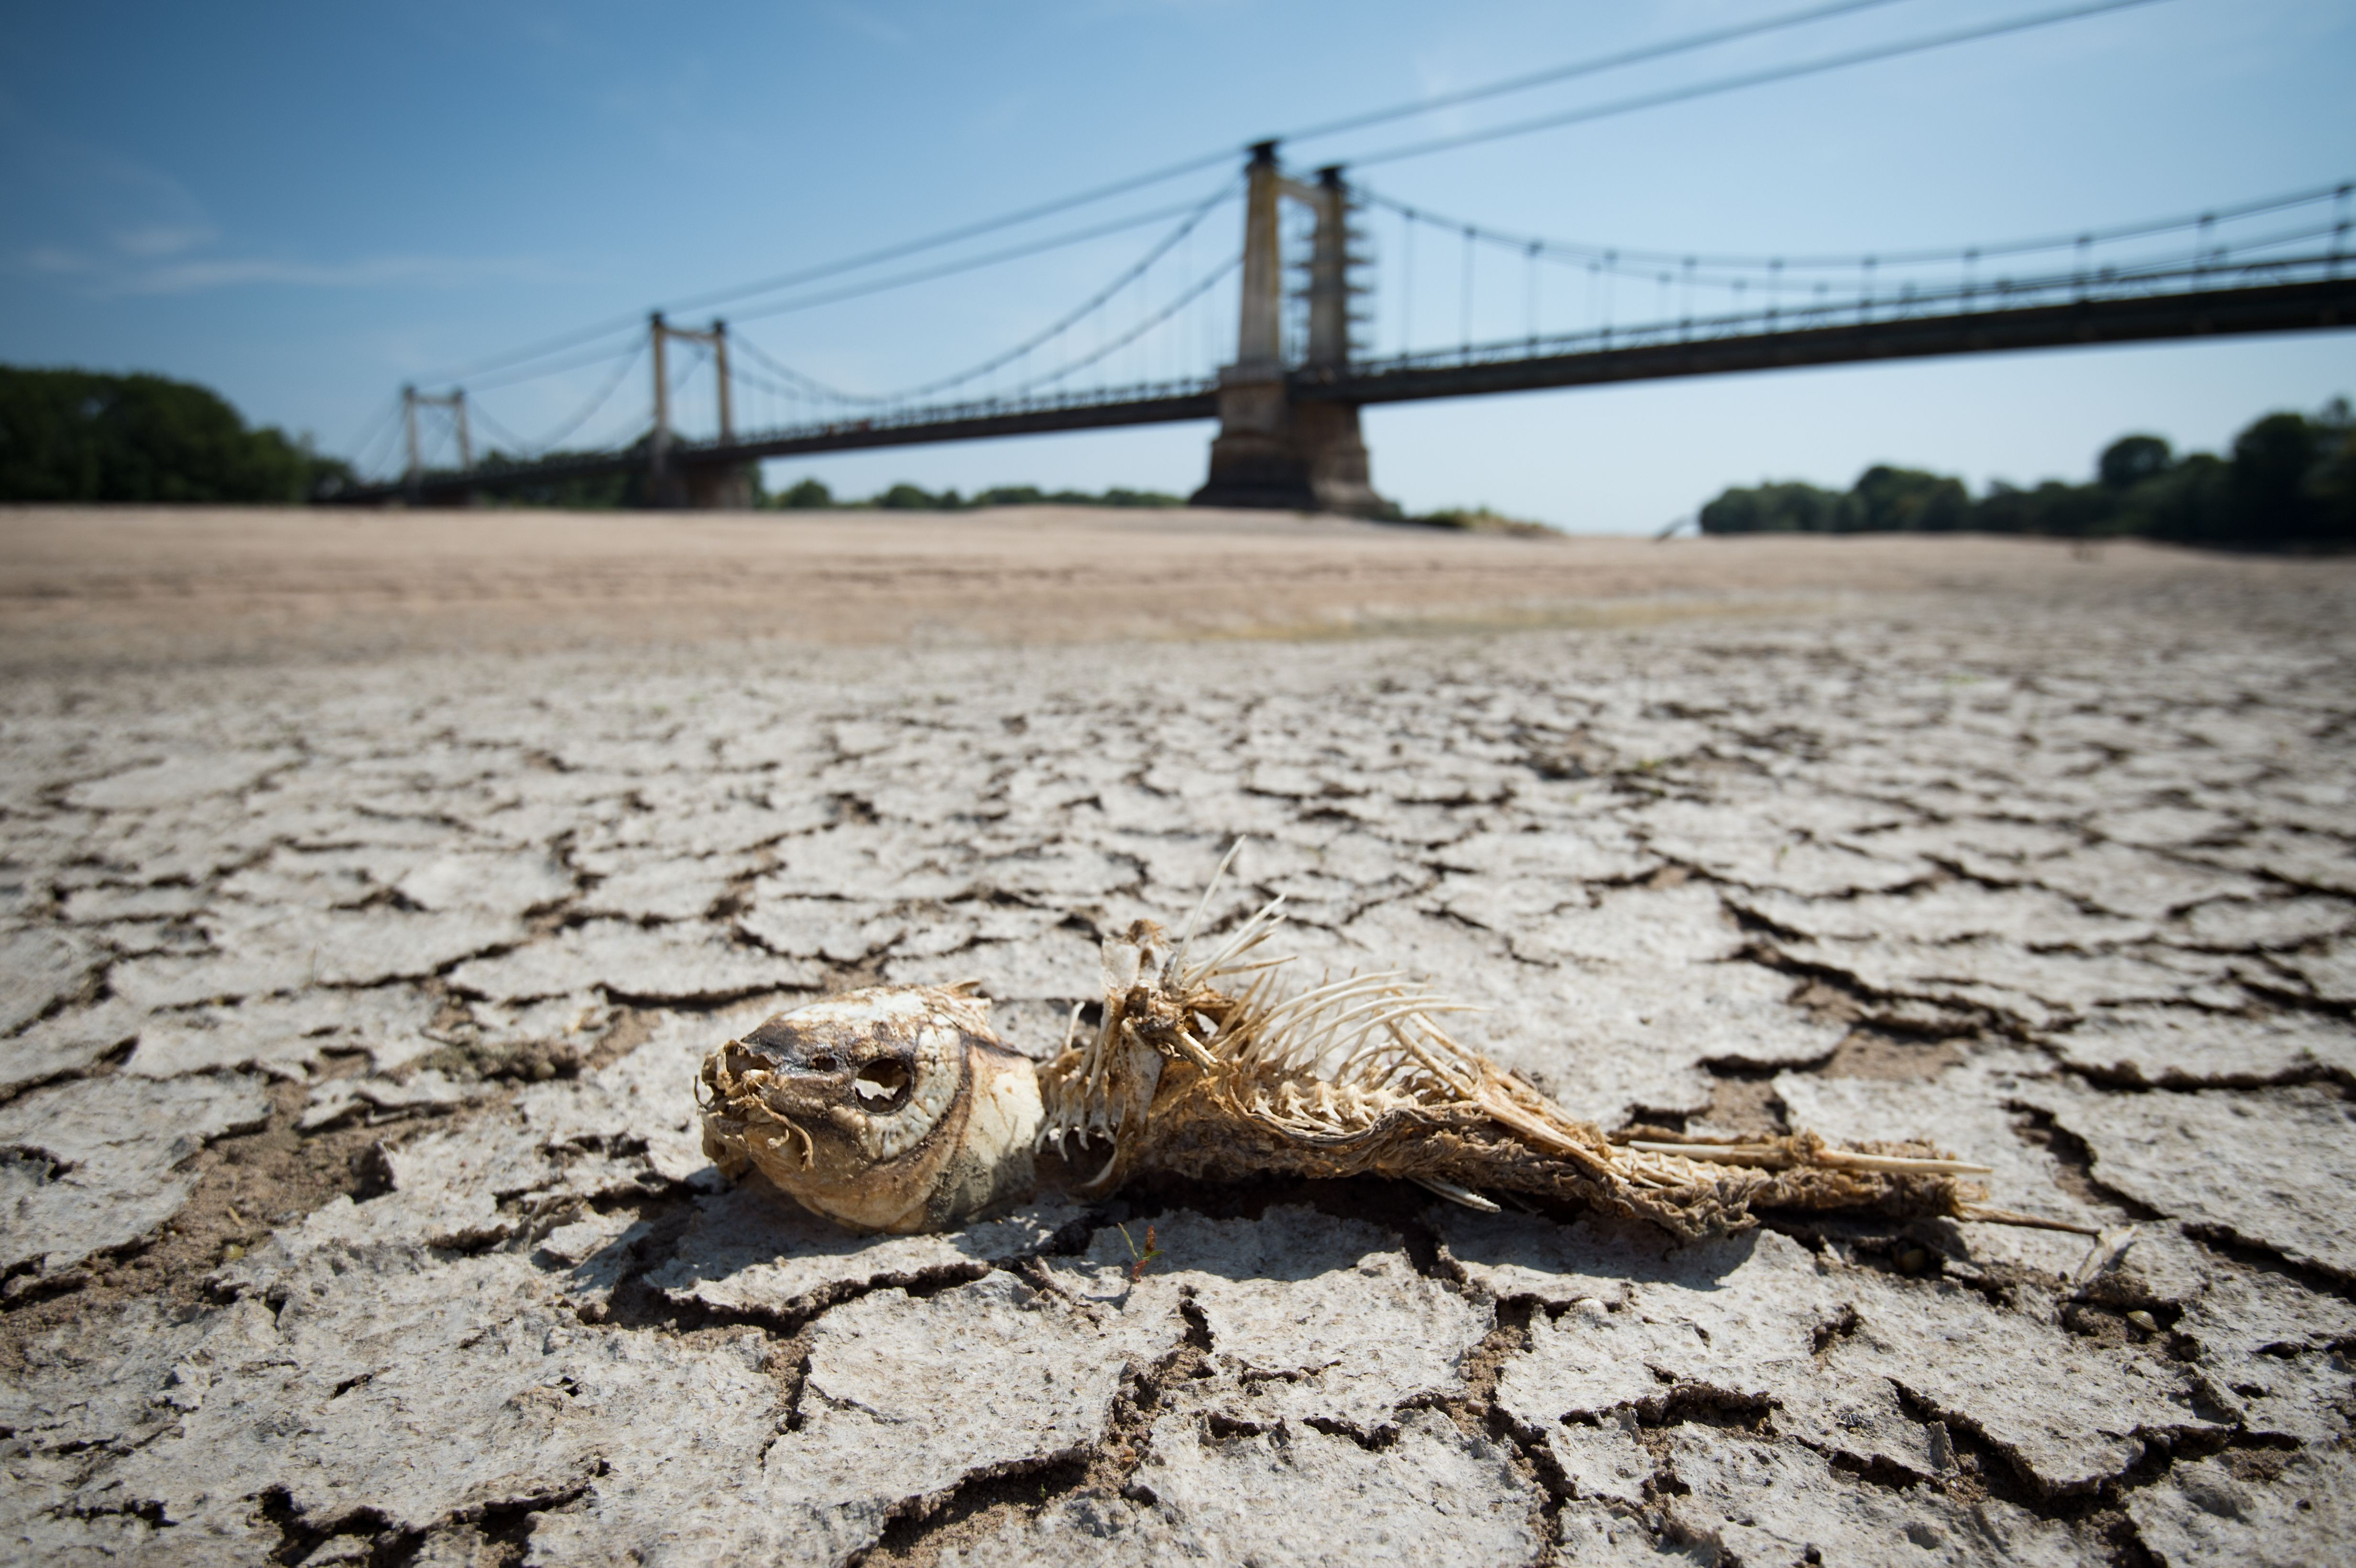 A fishbone lies on a dry part of the bed of the River Loire in western France on July 24, 2019, as drought conditions prevail over much of western Europe.